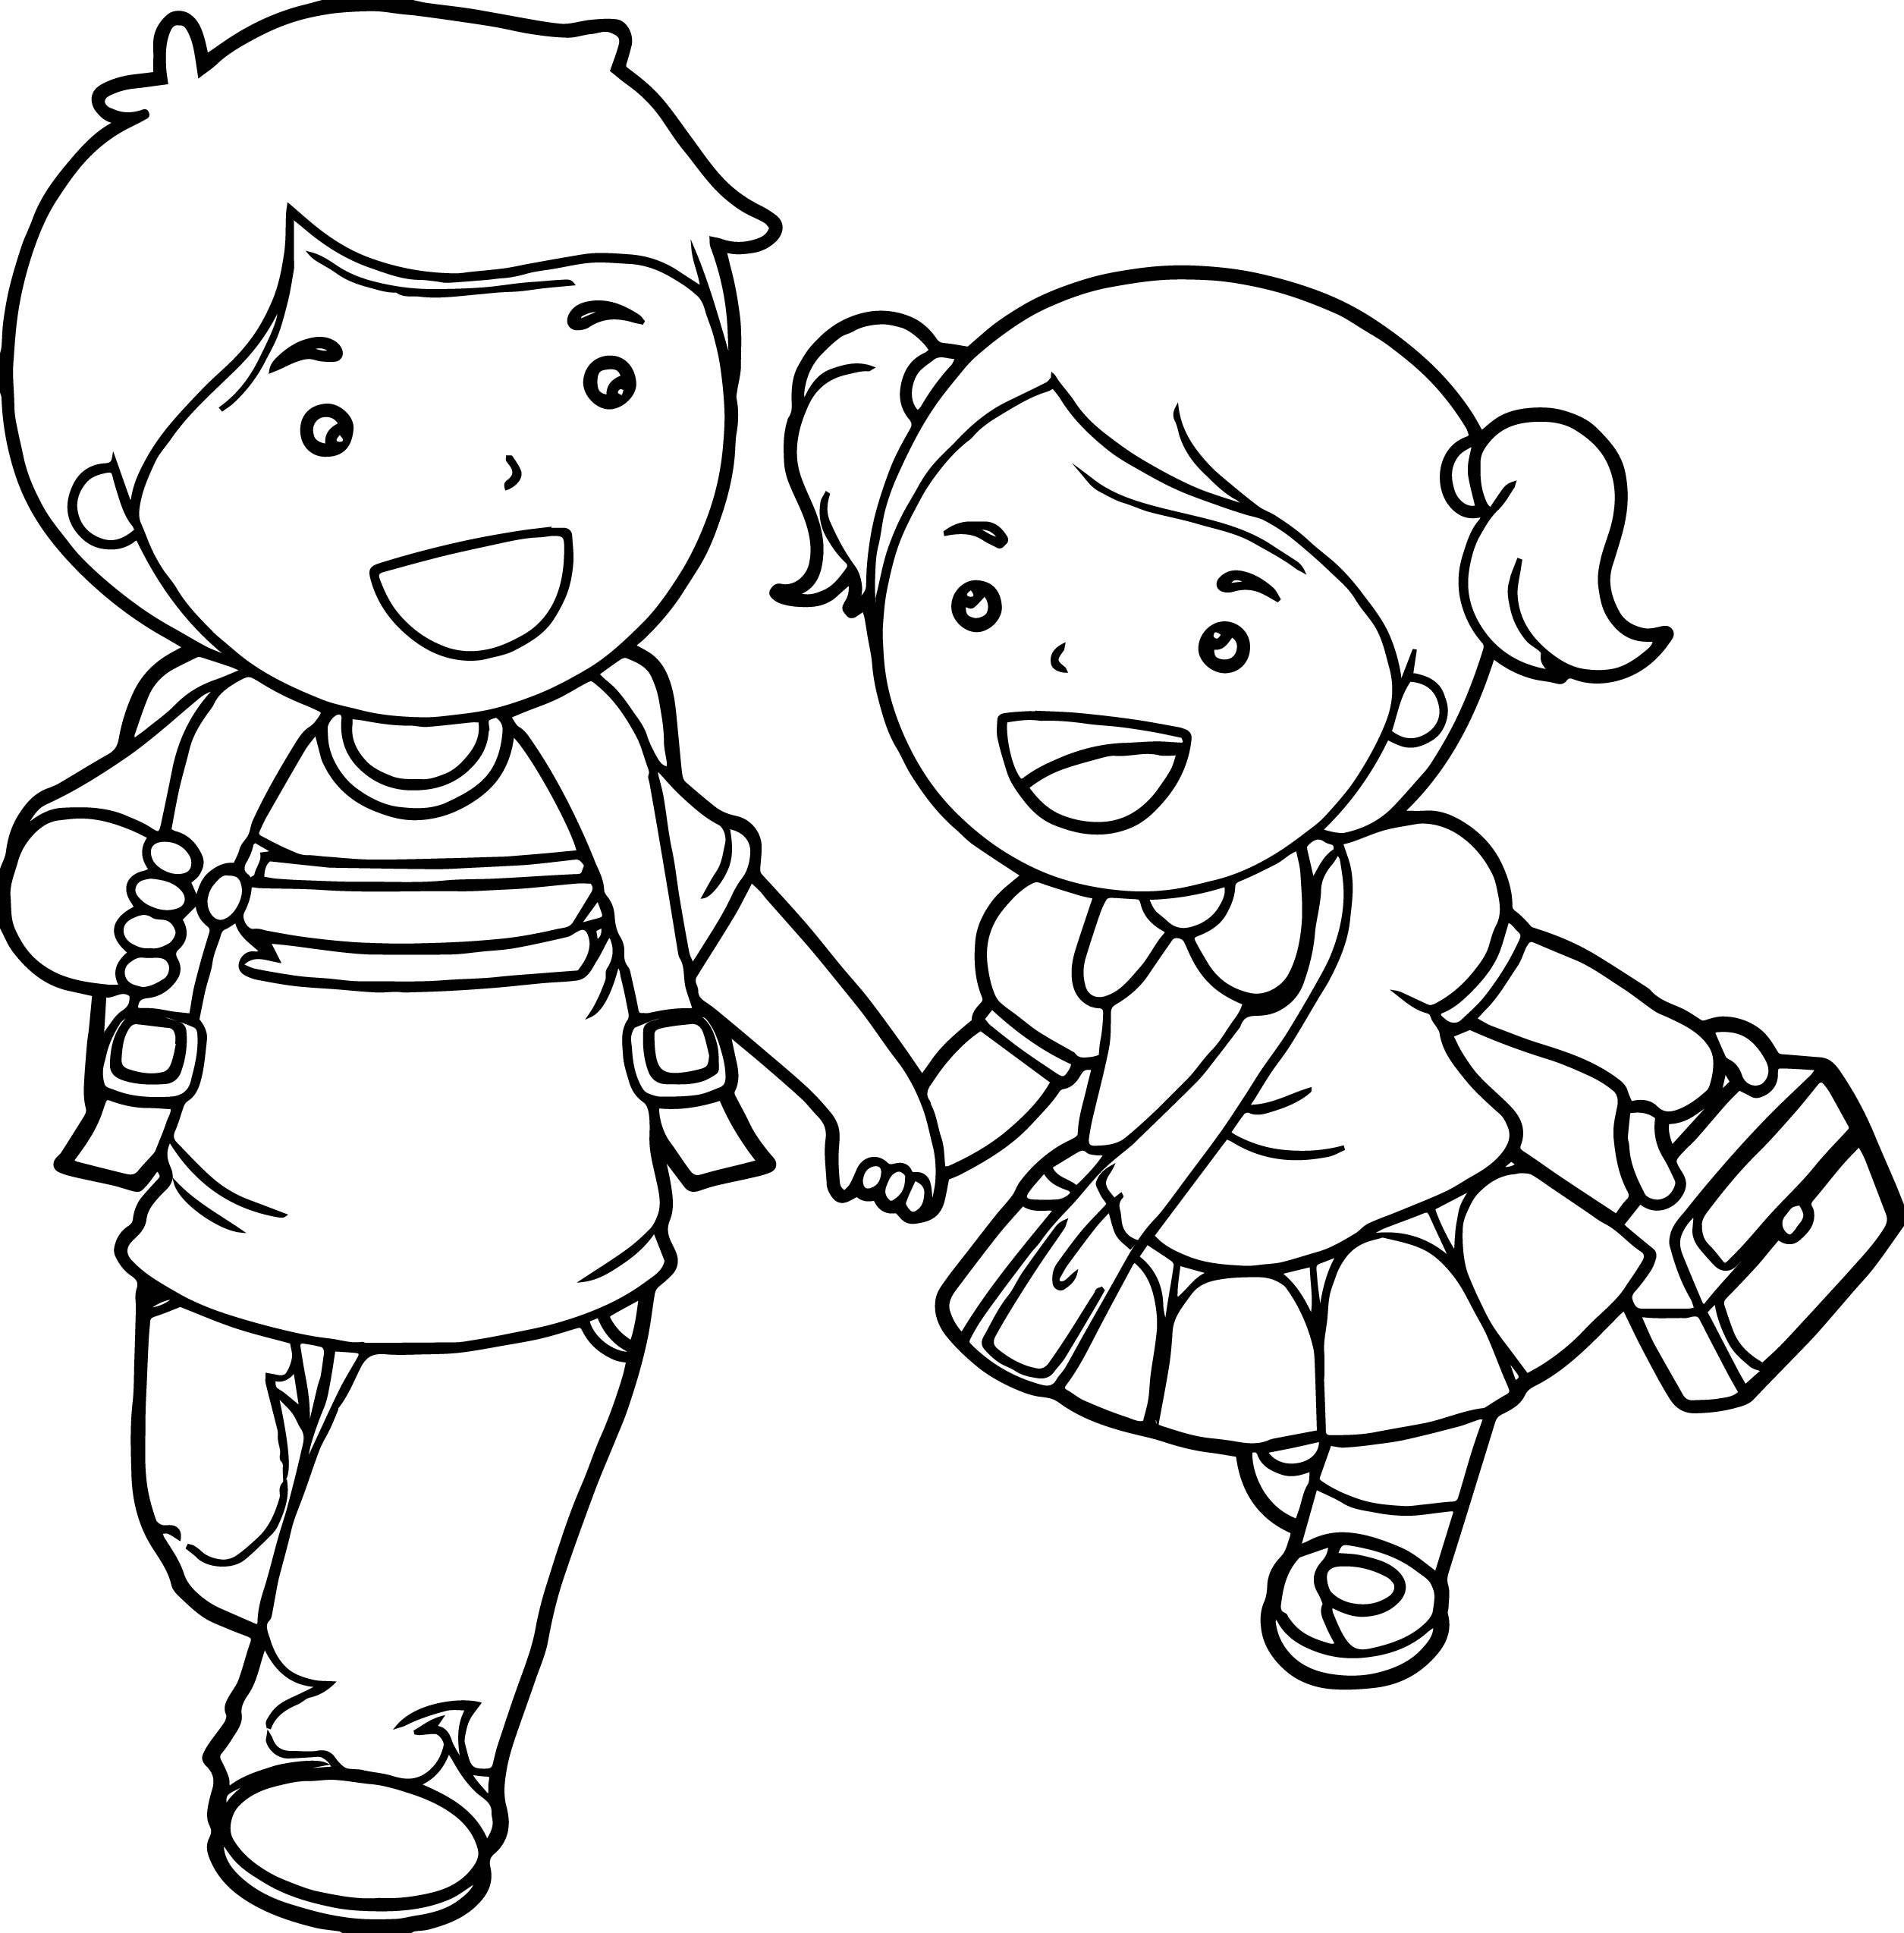 Boy and girl lets go school coloring page for Boys color pages